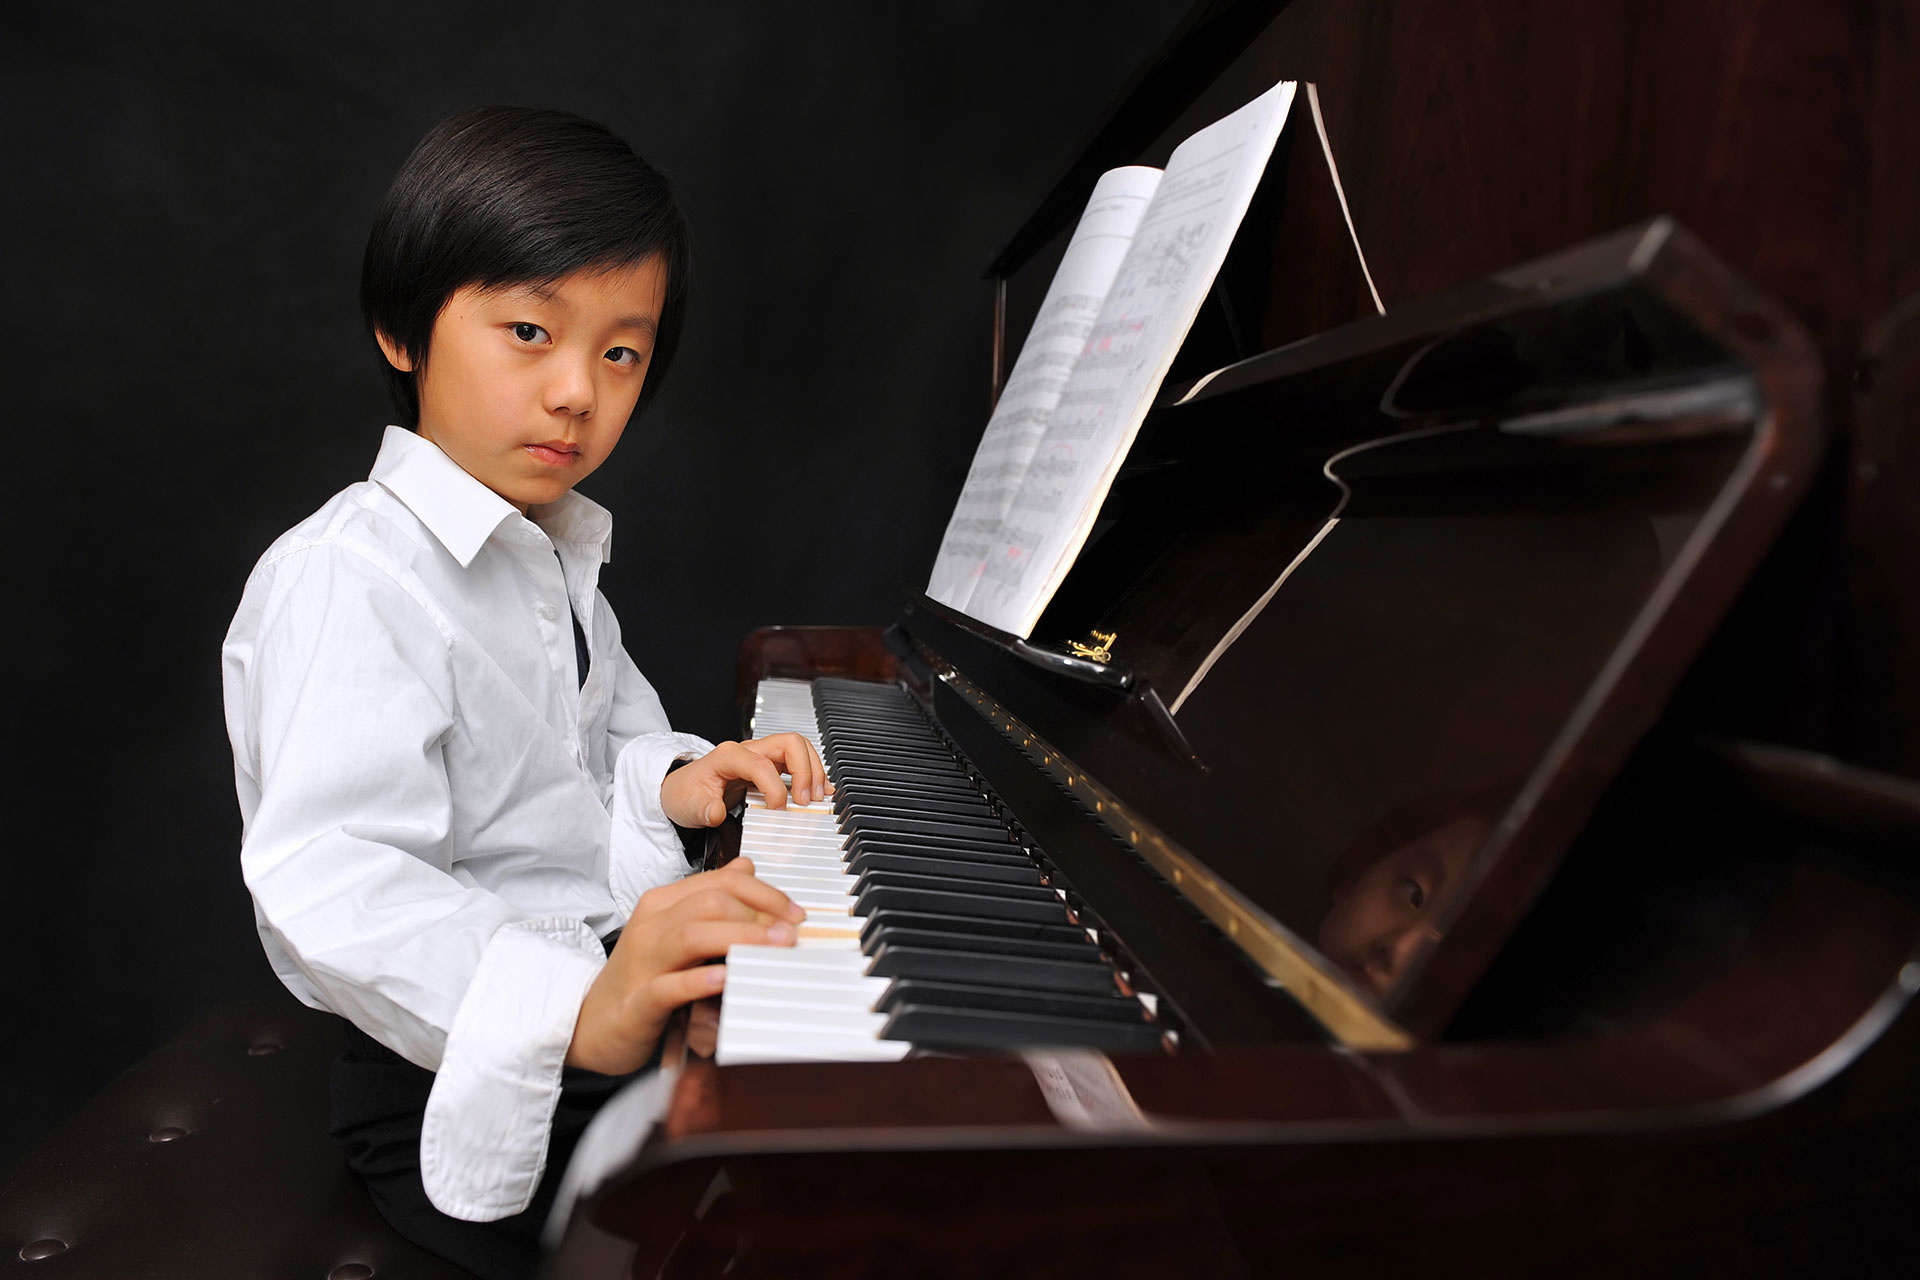 Private Piano 201: Young Musician